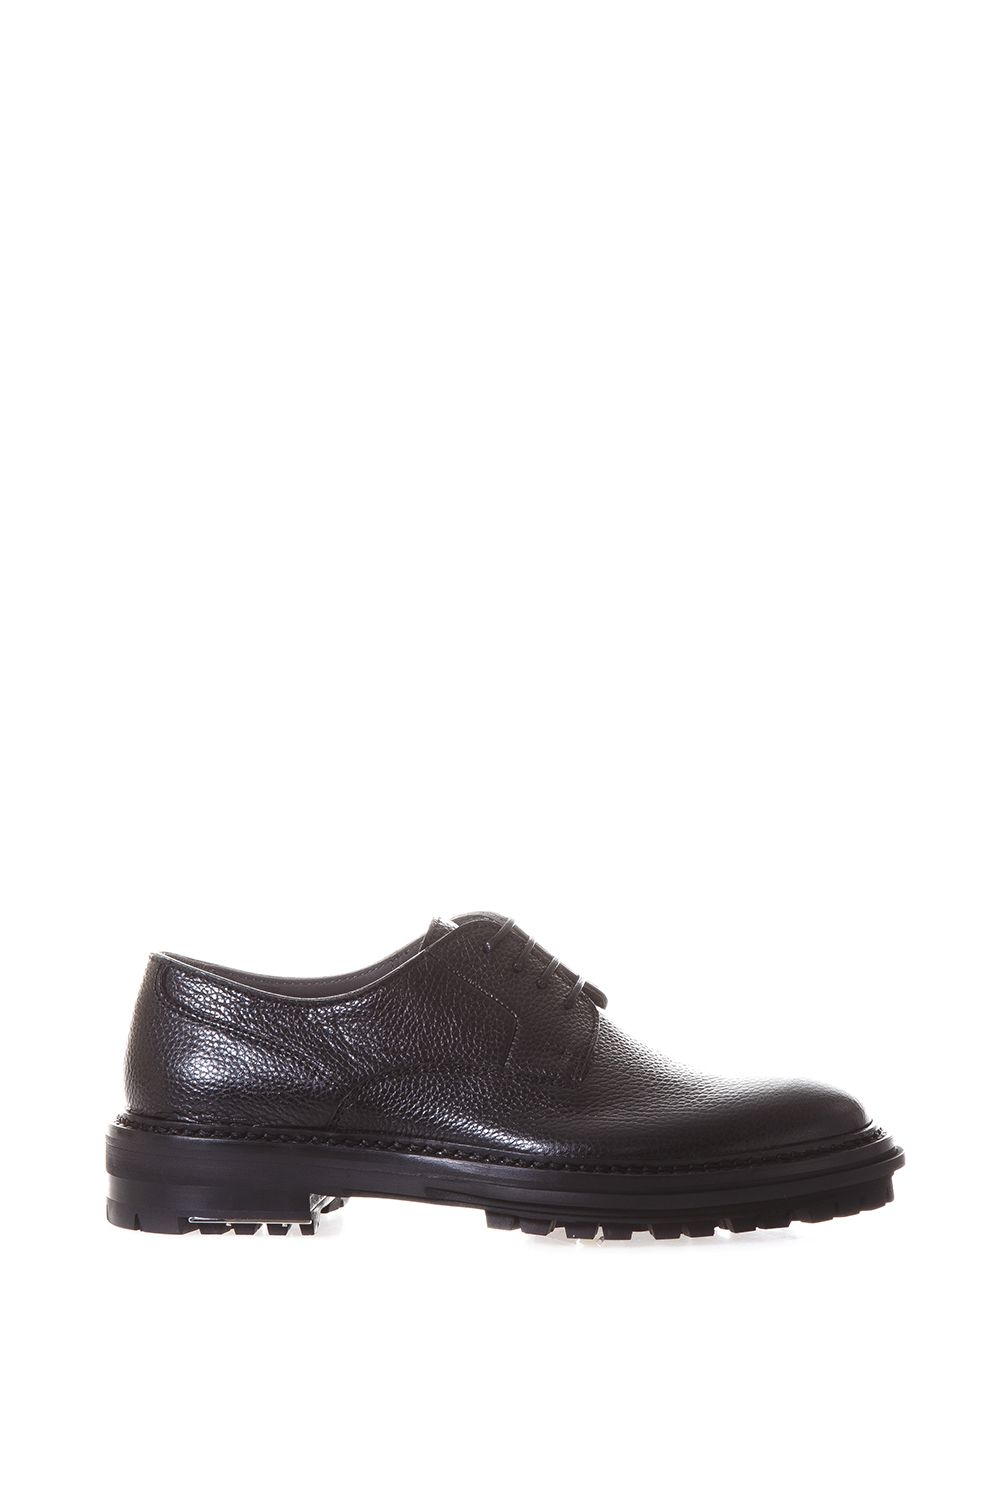 Lanvin Grained Leather Derby Shoes